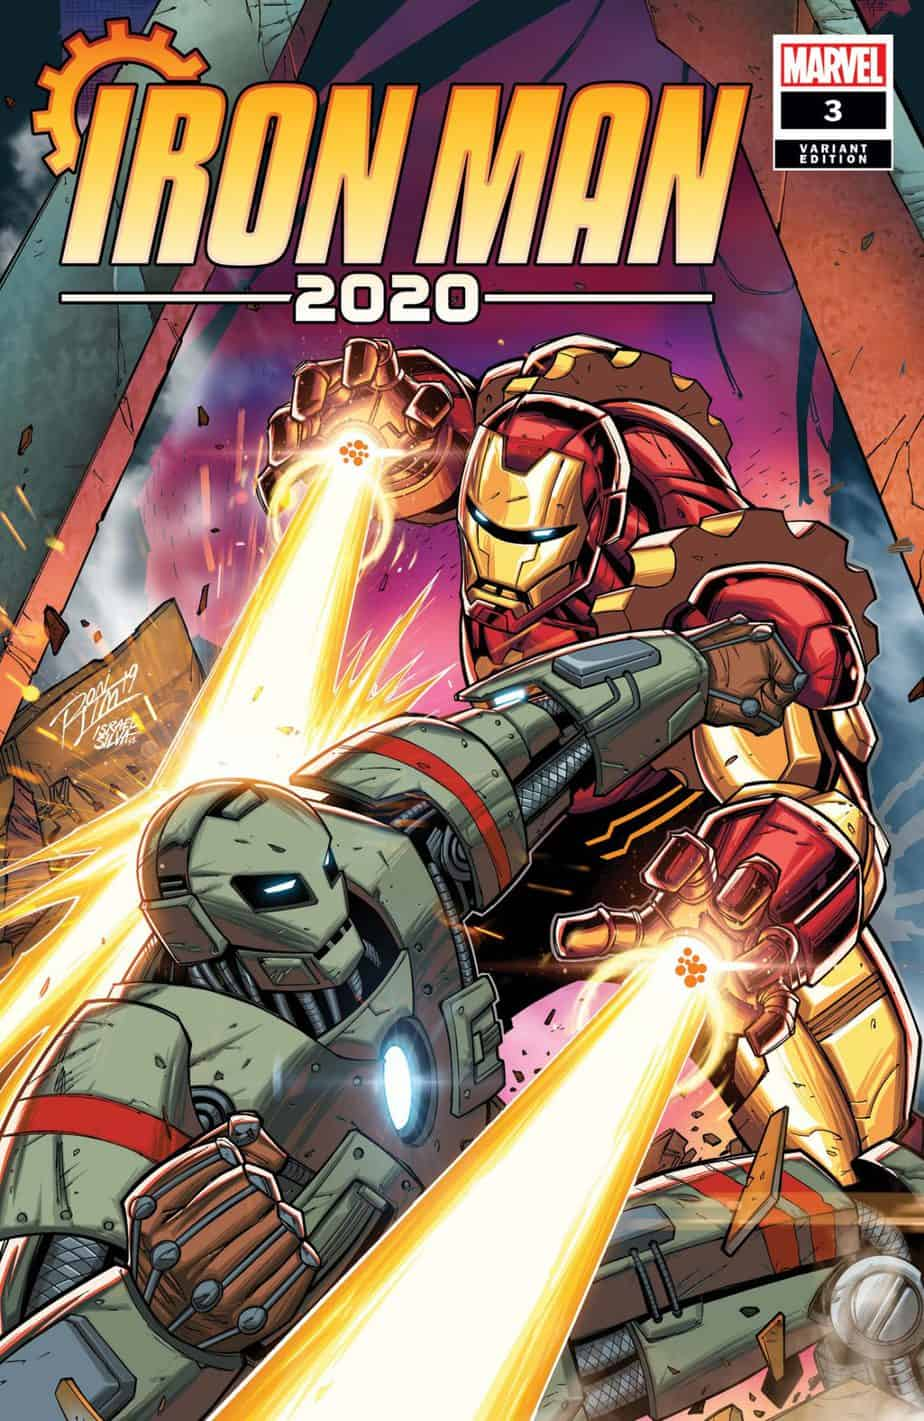 IRON MAN 2020 #3 - Cover D